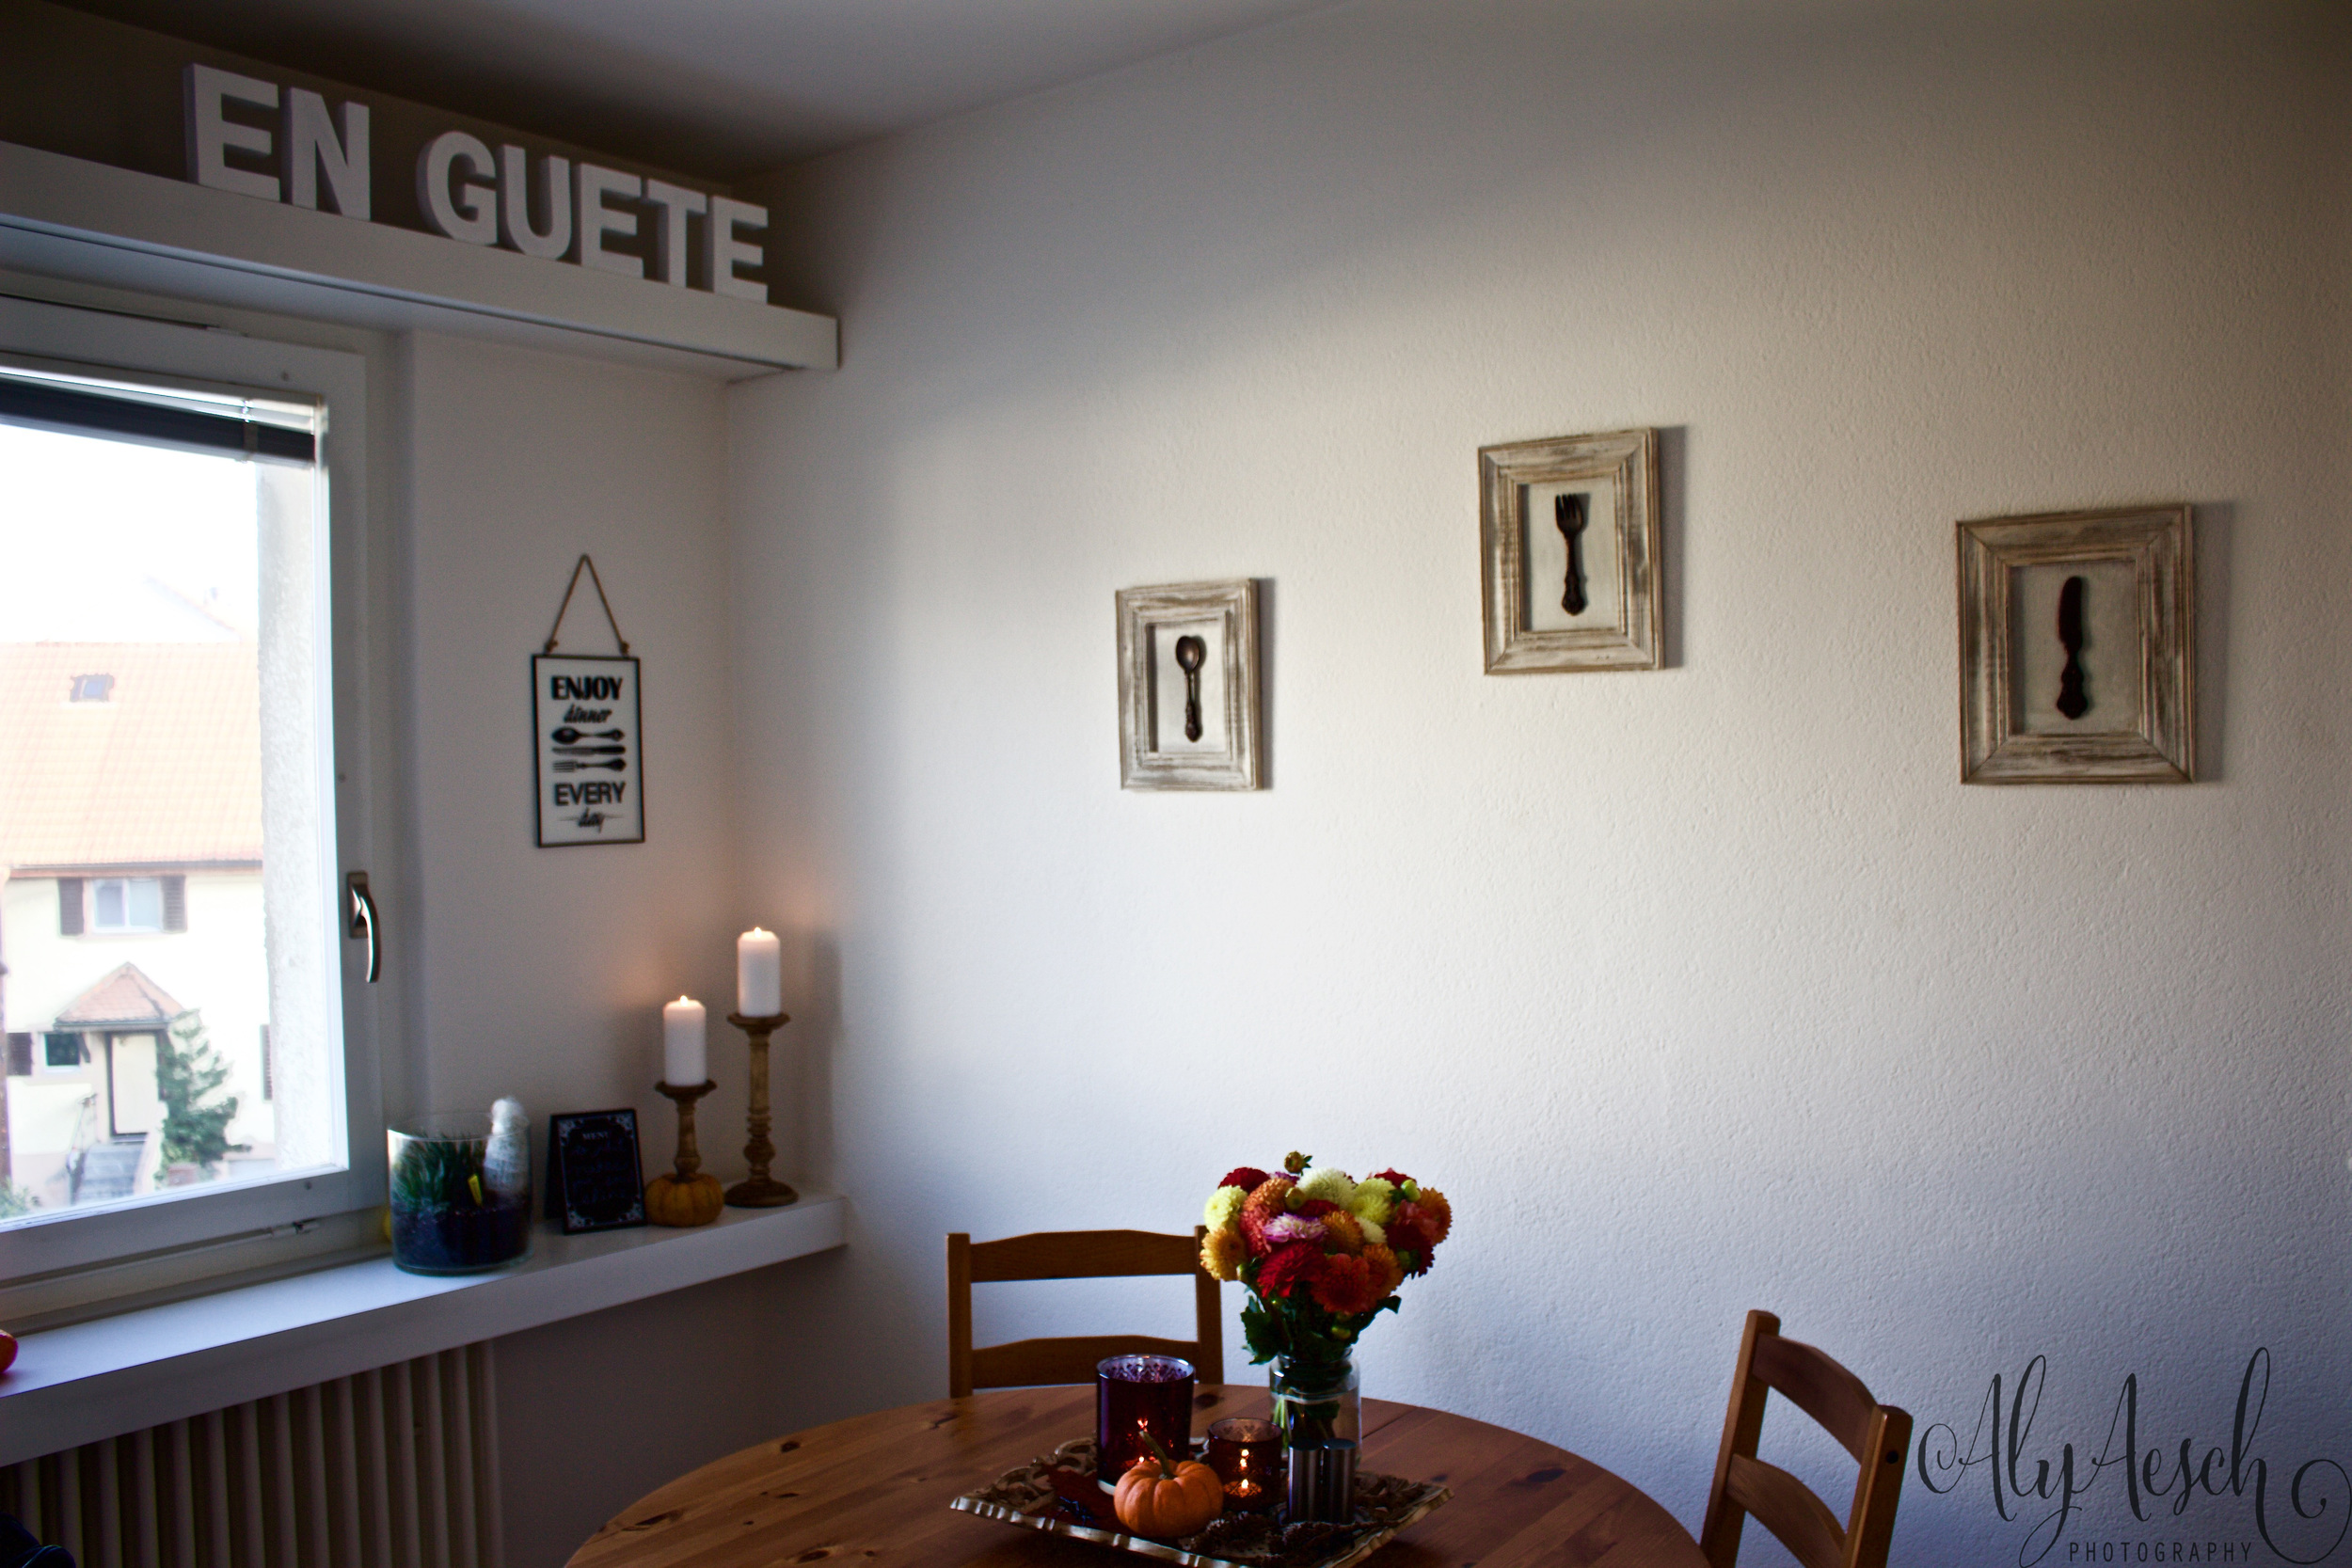 Here is the overview of my dining room. I adore it!  'En Guete' means 'Enjoy your meal'. It's the swiss version of 'bon appetite'.